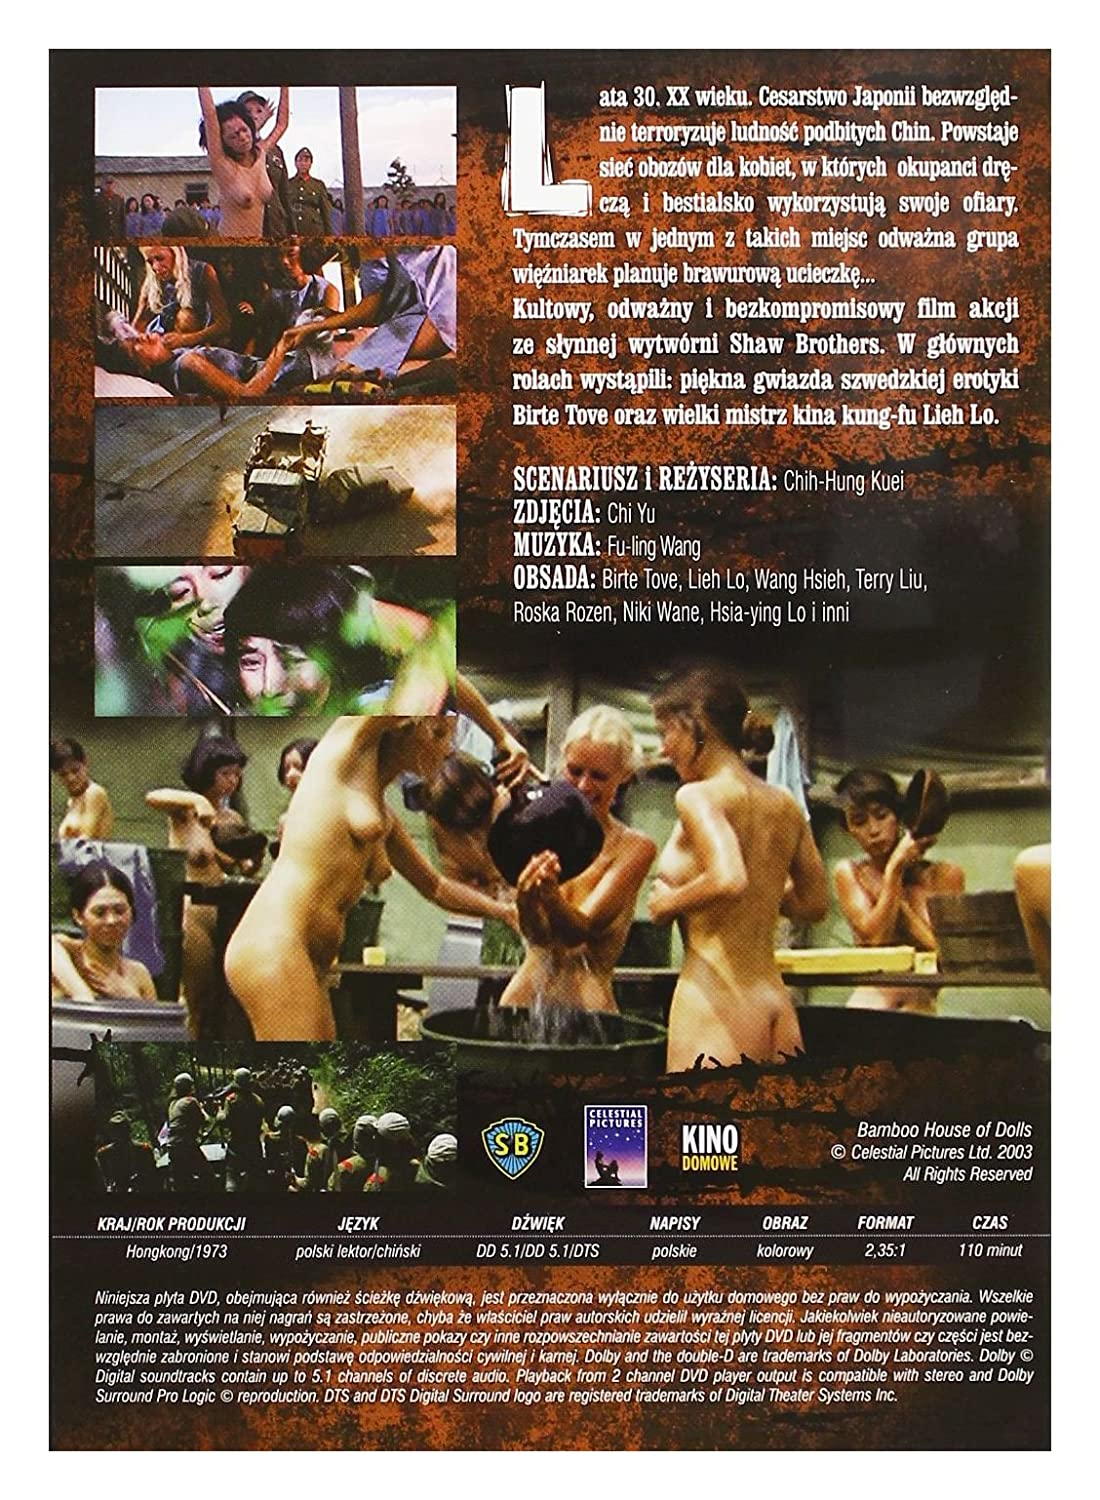 the bamboo house of dolls (1973)